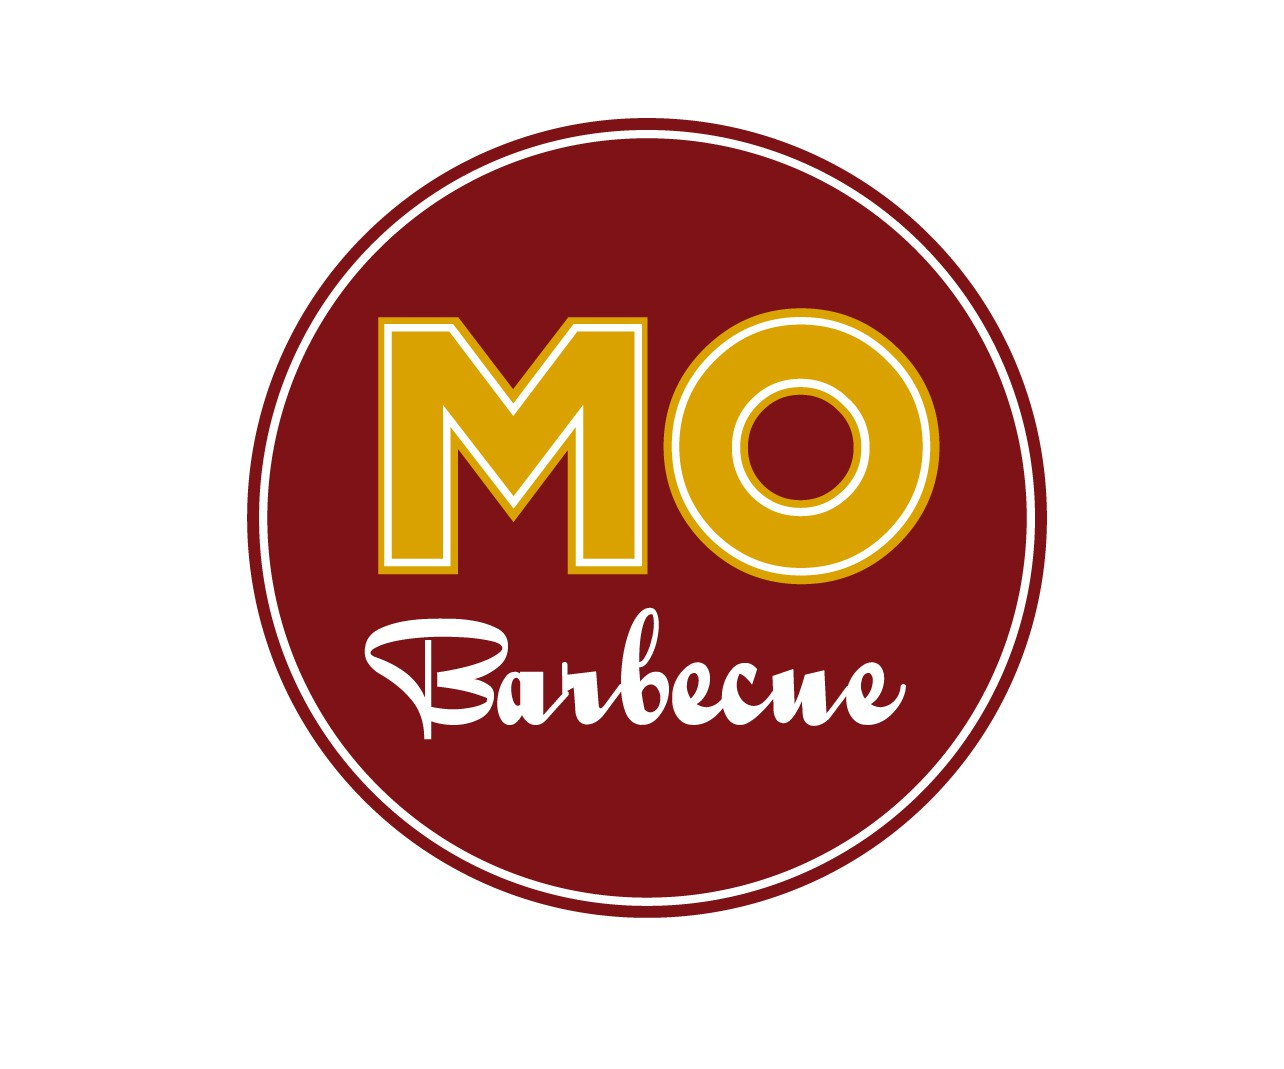 New logo wanted for MO Barbeque